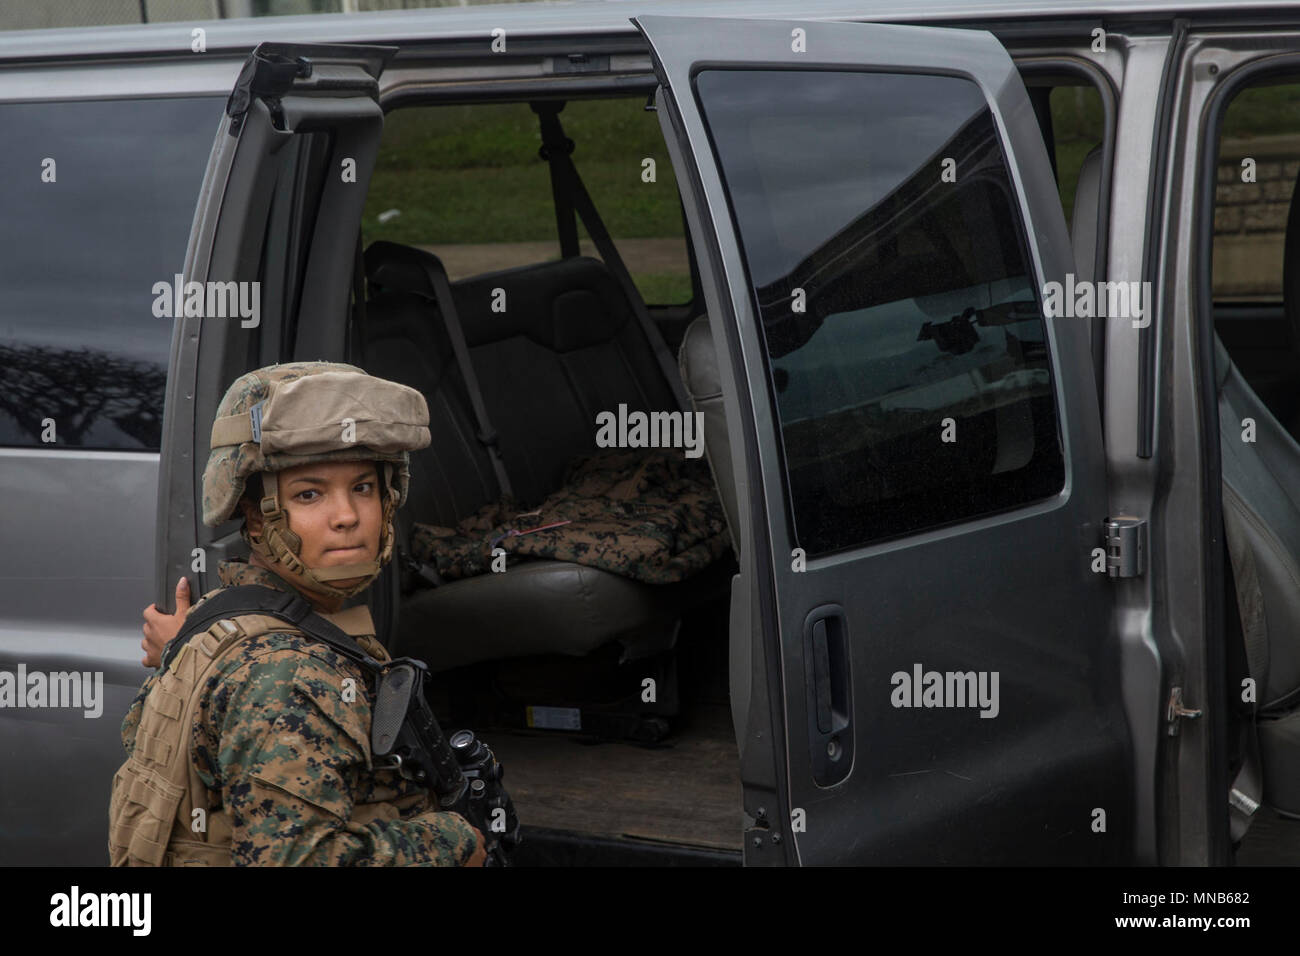 A U.S. Marines with Marine Air Ground Task Group 24 conducts a vehicle inspection for a base defensive exercie aboard Marine Corps Air Station Kaneohe Bay, Mar. 14, 2018. The exercise was conducted to ensure proper measures are taken in the event that a threat arises at the air station. (U.S. Marine Corps - Stock Image